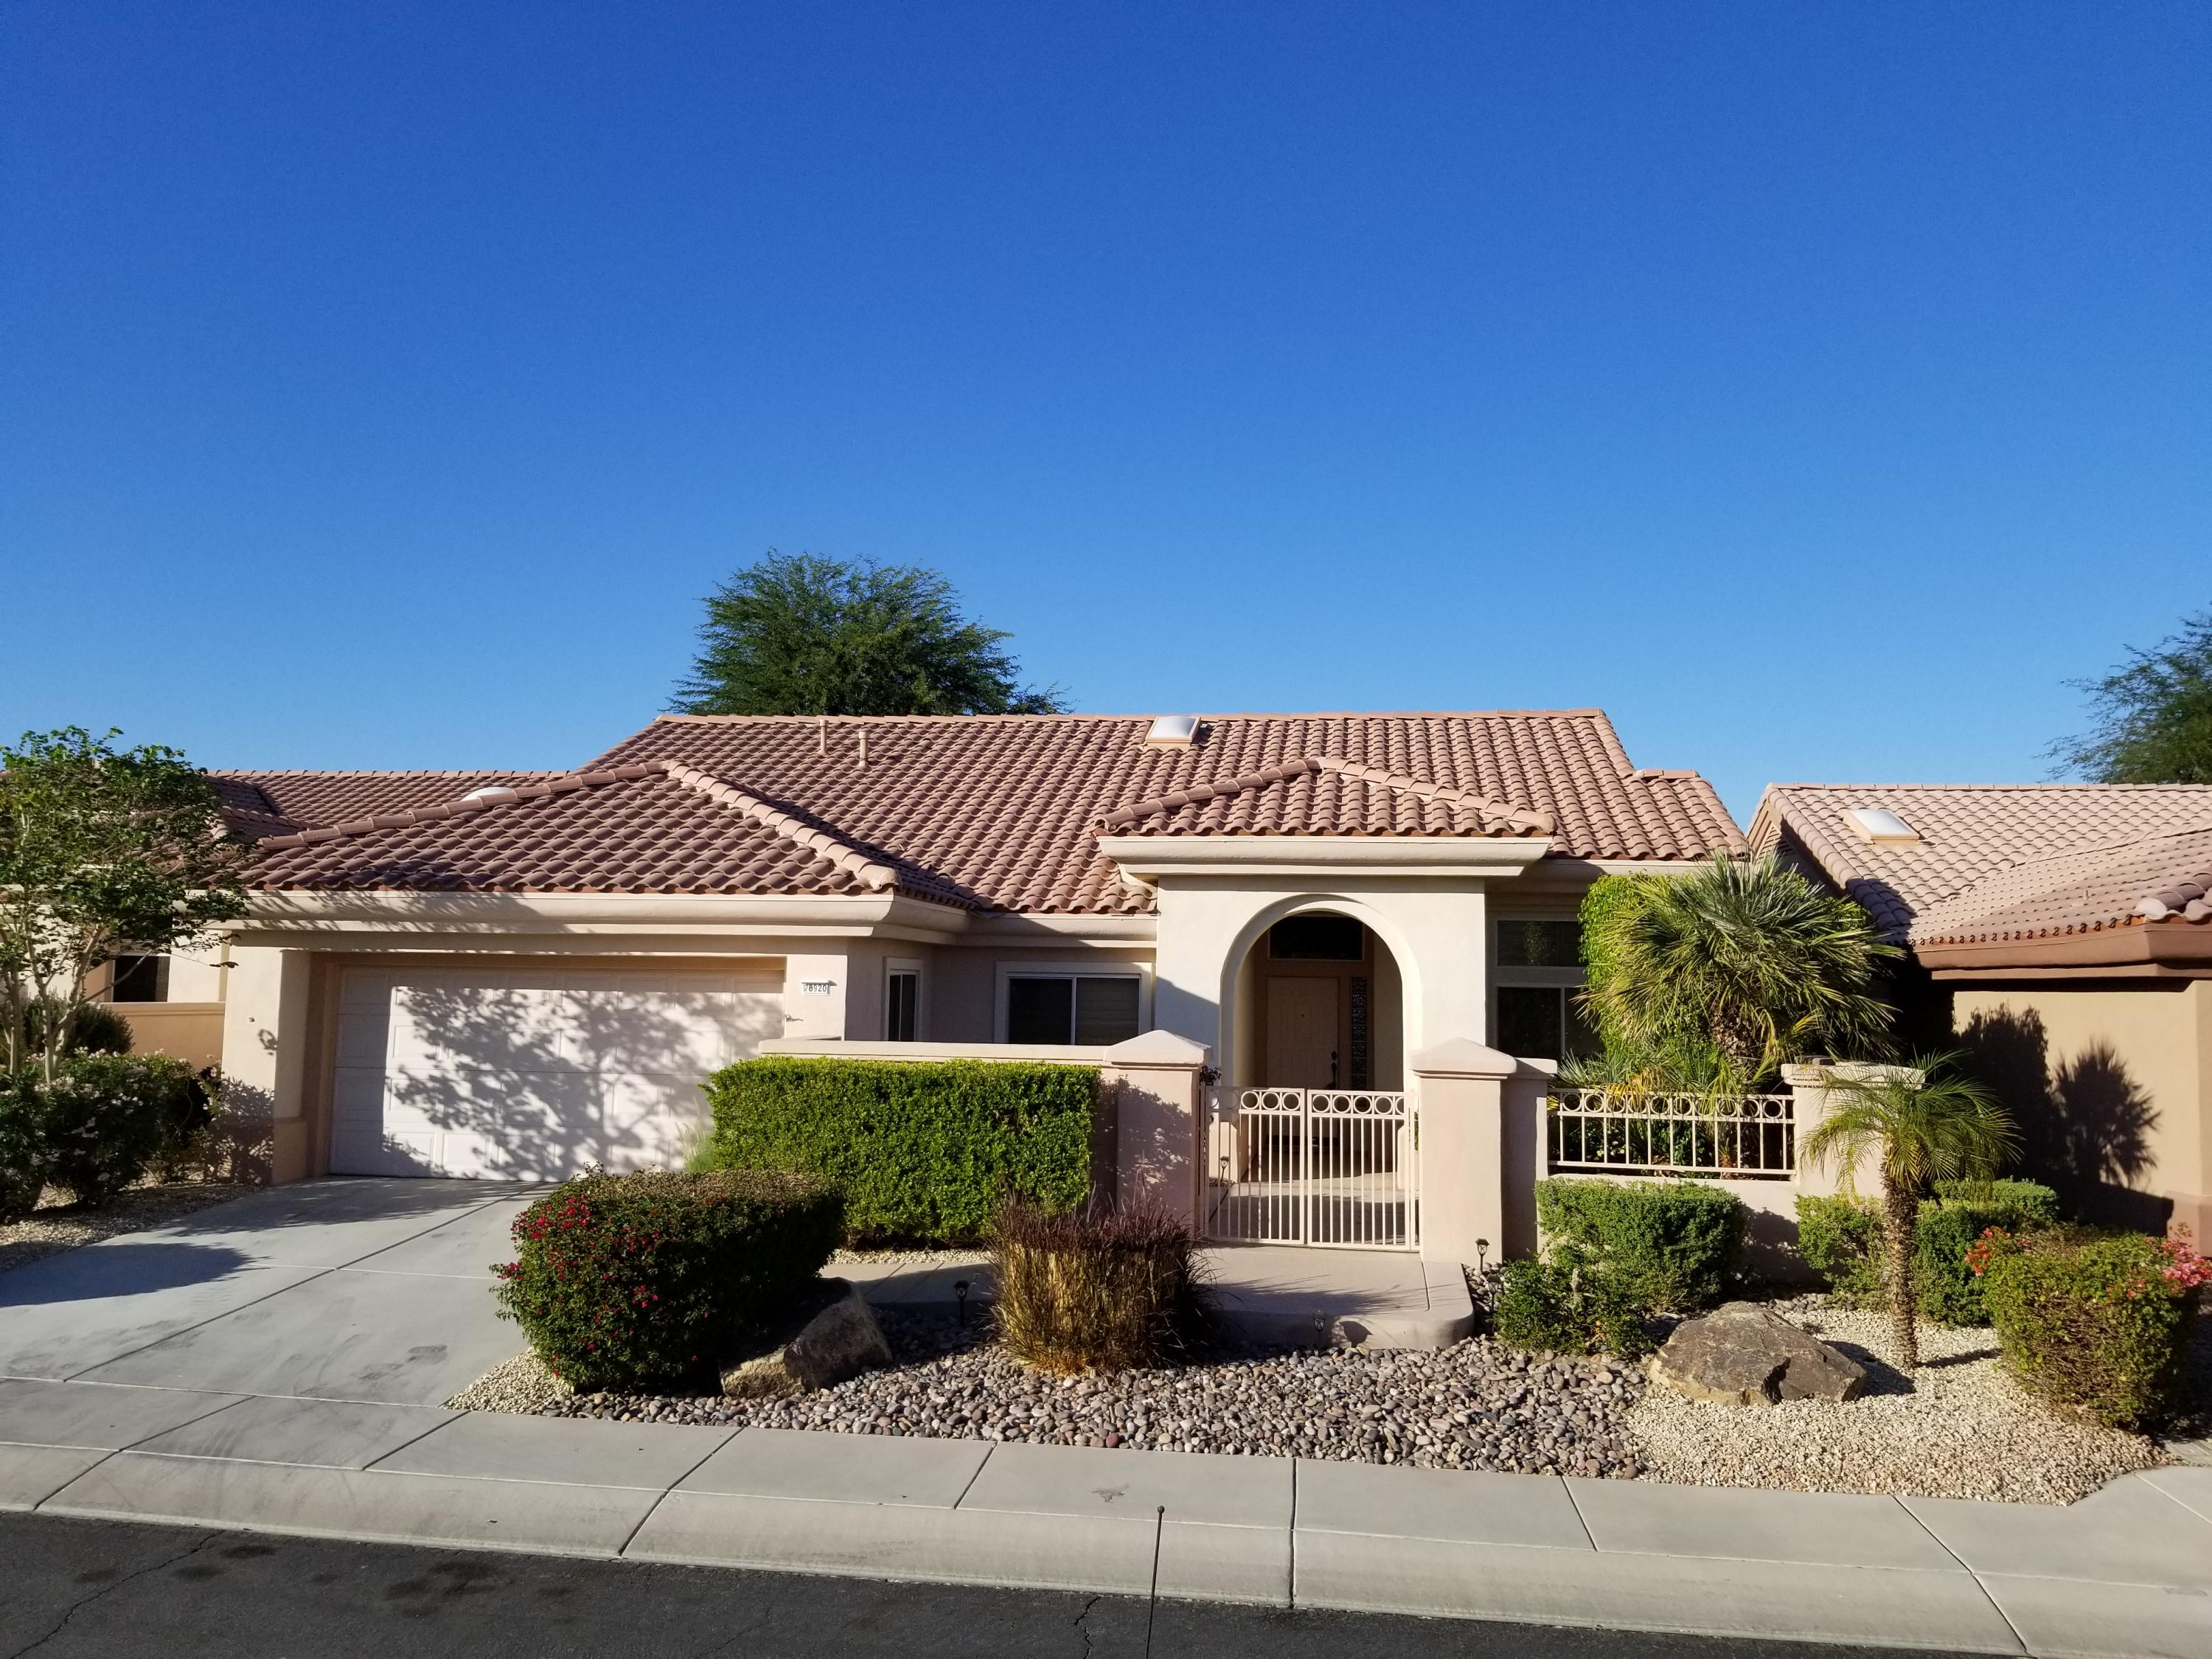 Photo of 78920 Mimosa Drive, Palm Desert, CA 92211